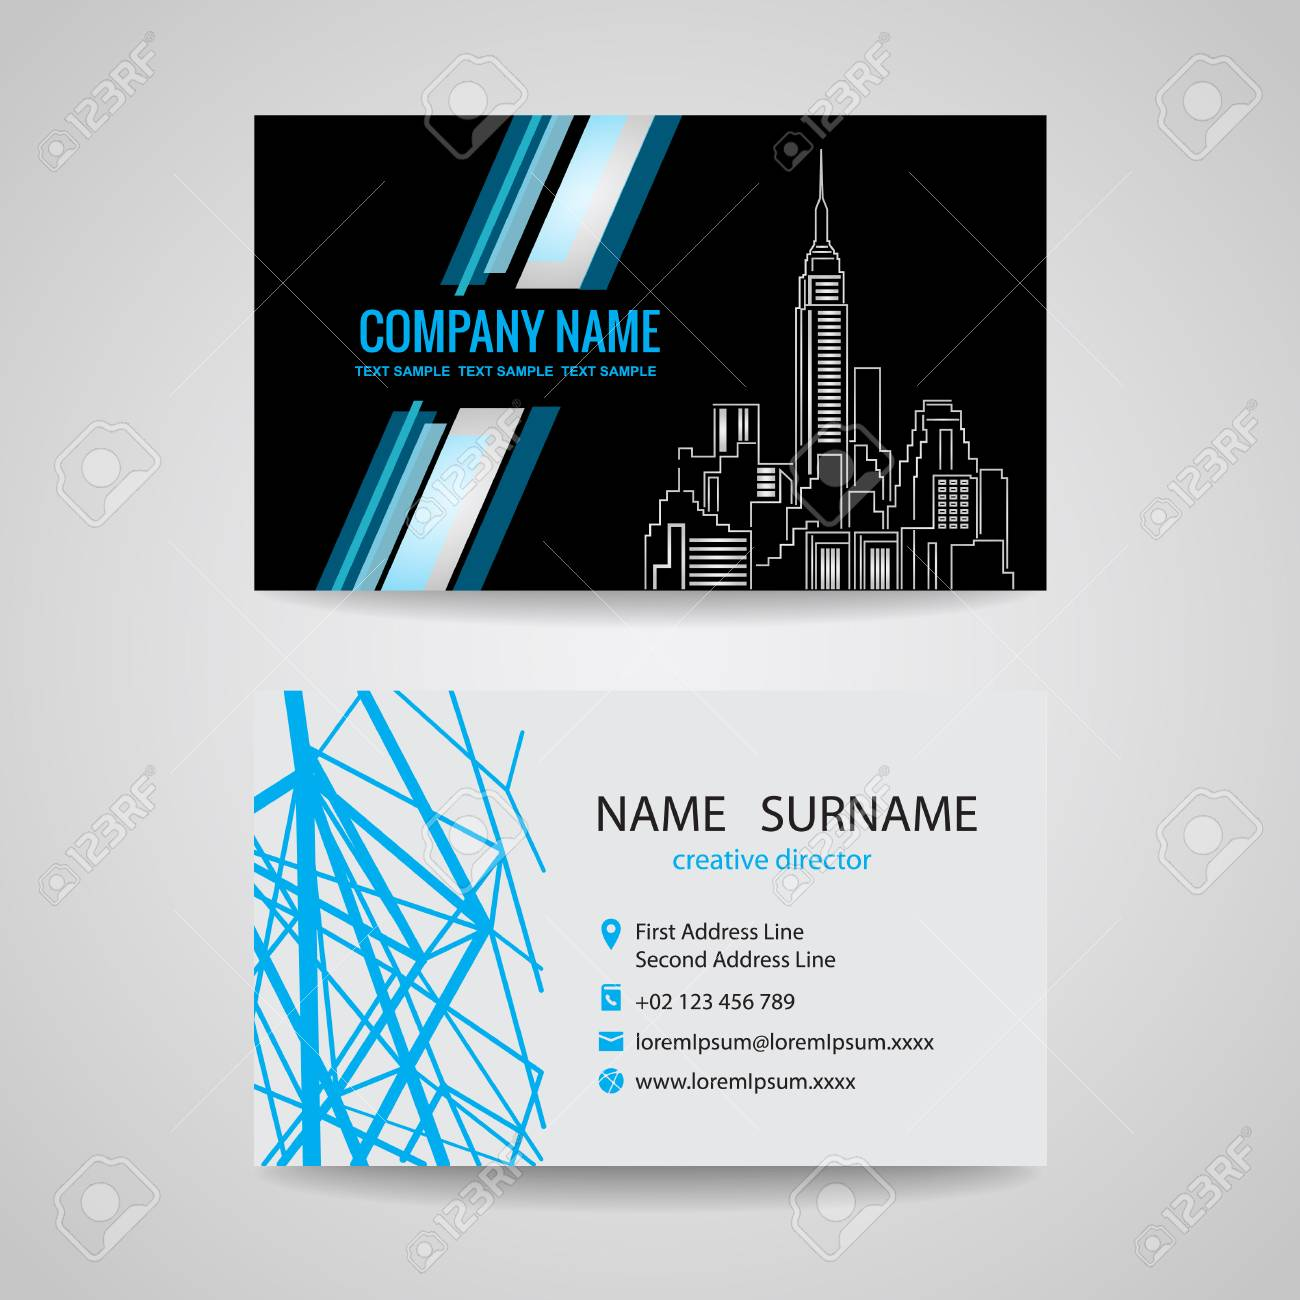 Business card design for about structure building royalty free business card design for about structure building stock vector 41847993 reheart Images